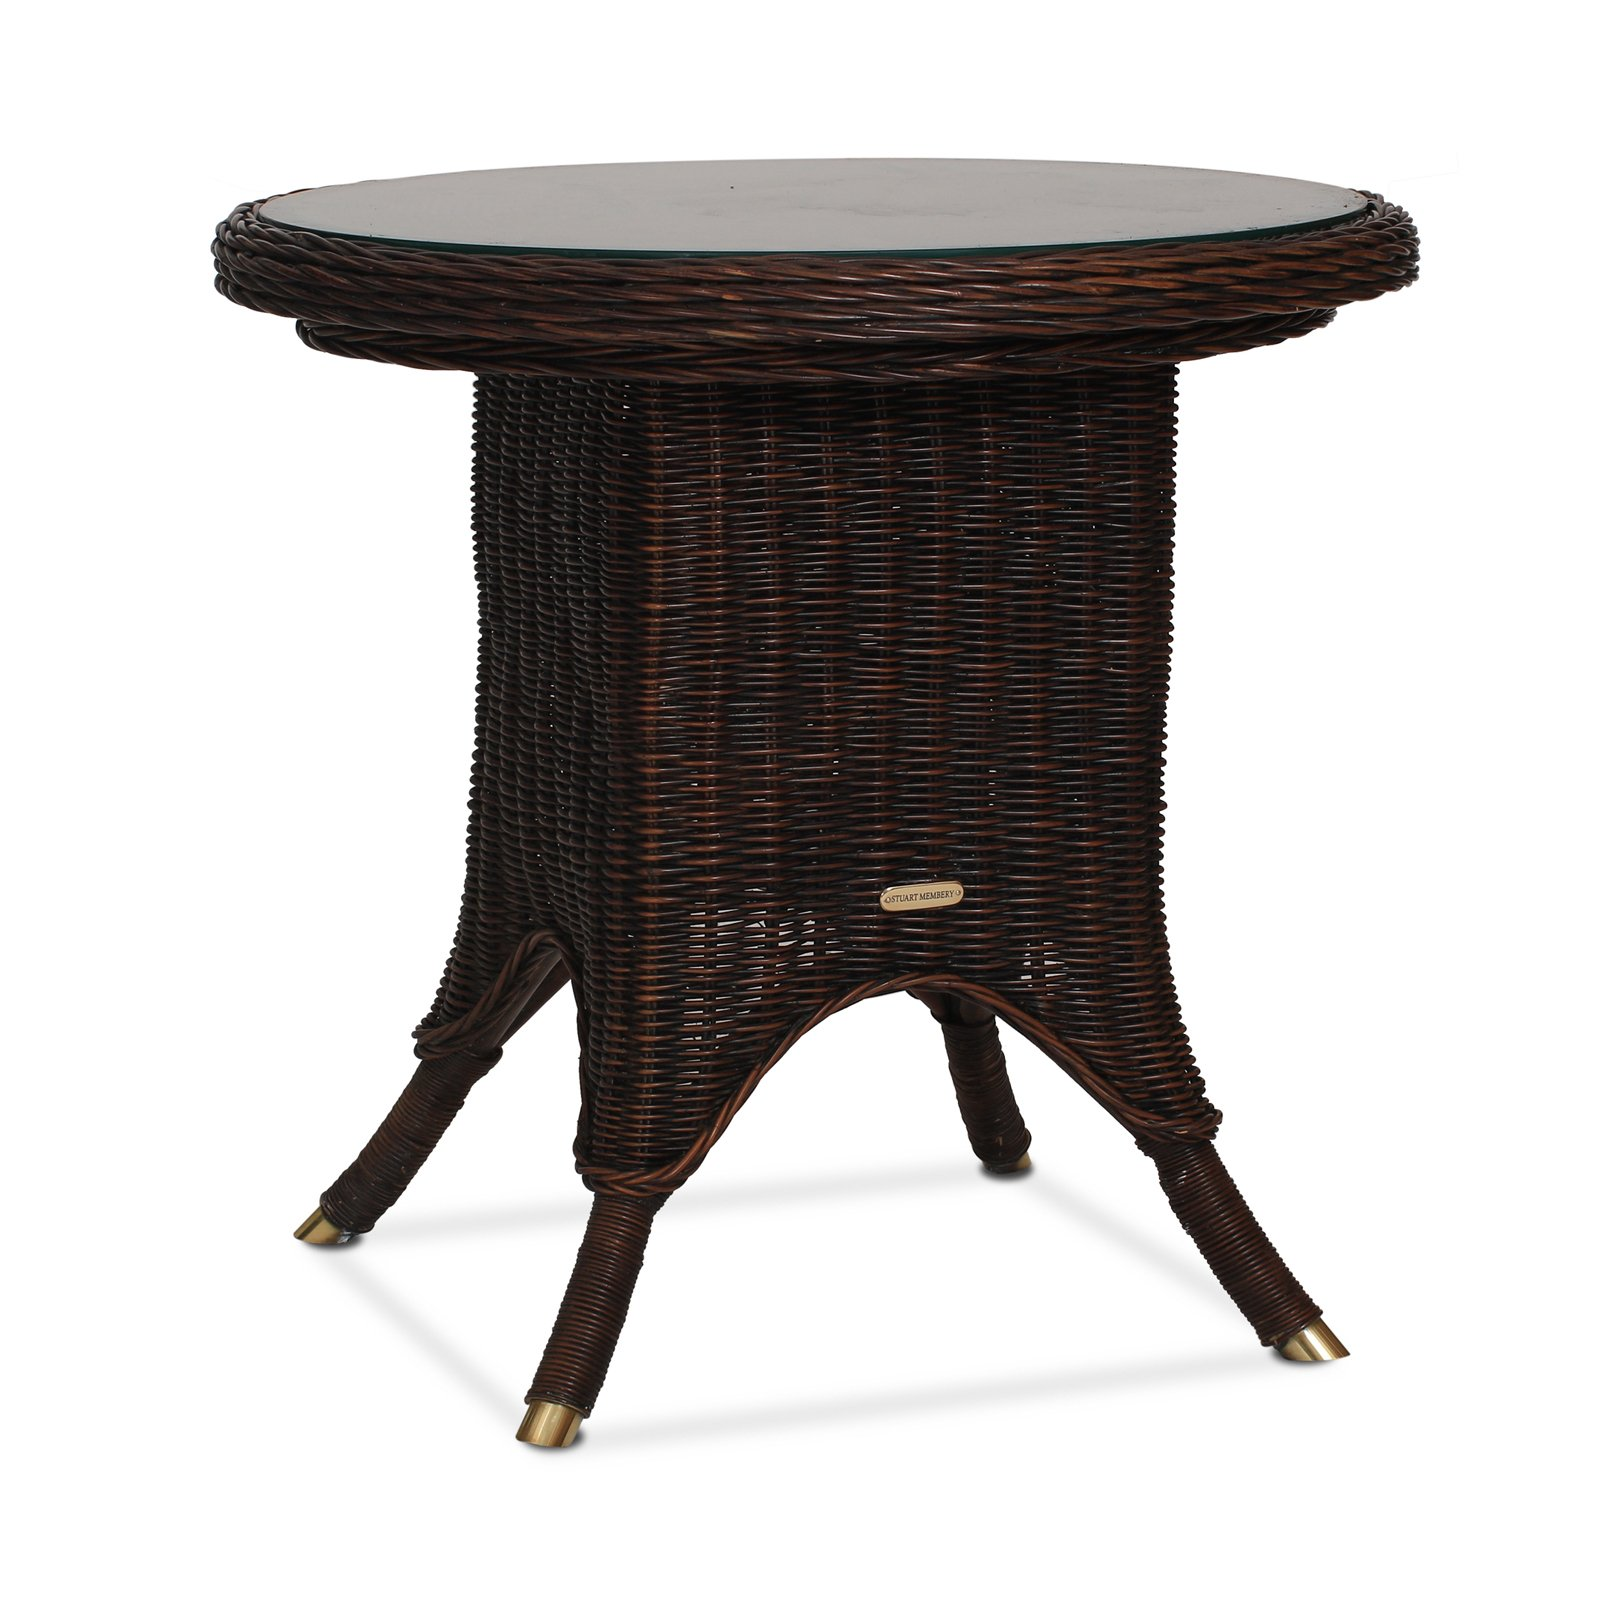 HUDSON BAY OCCASIONAL TABLE